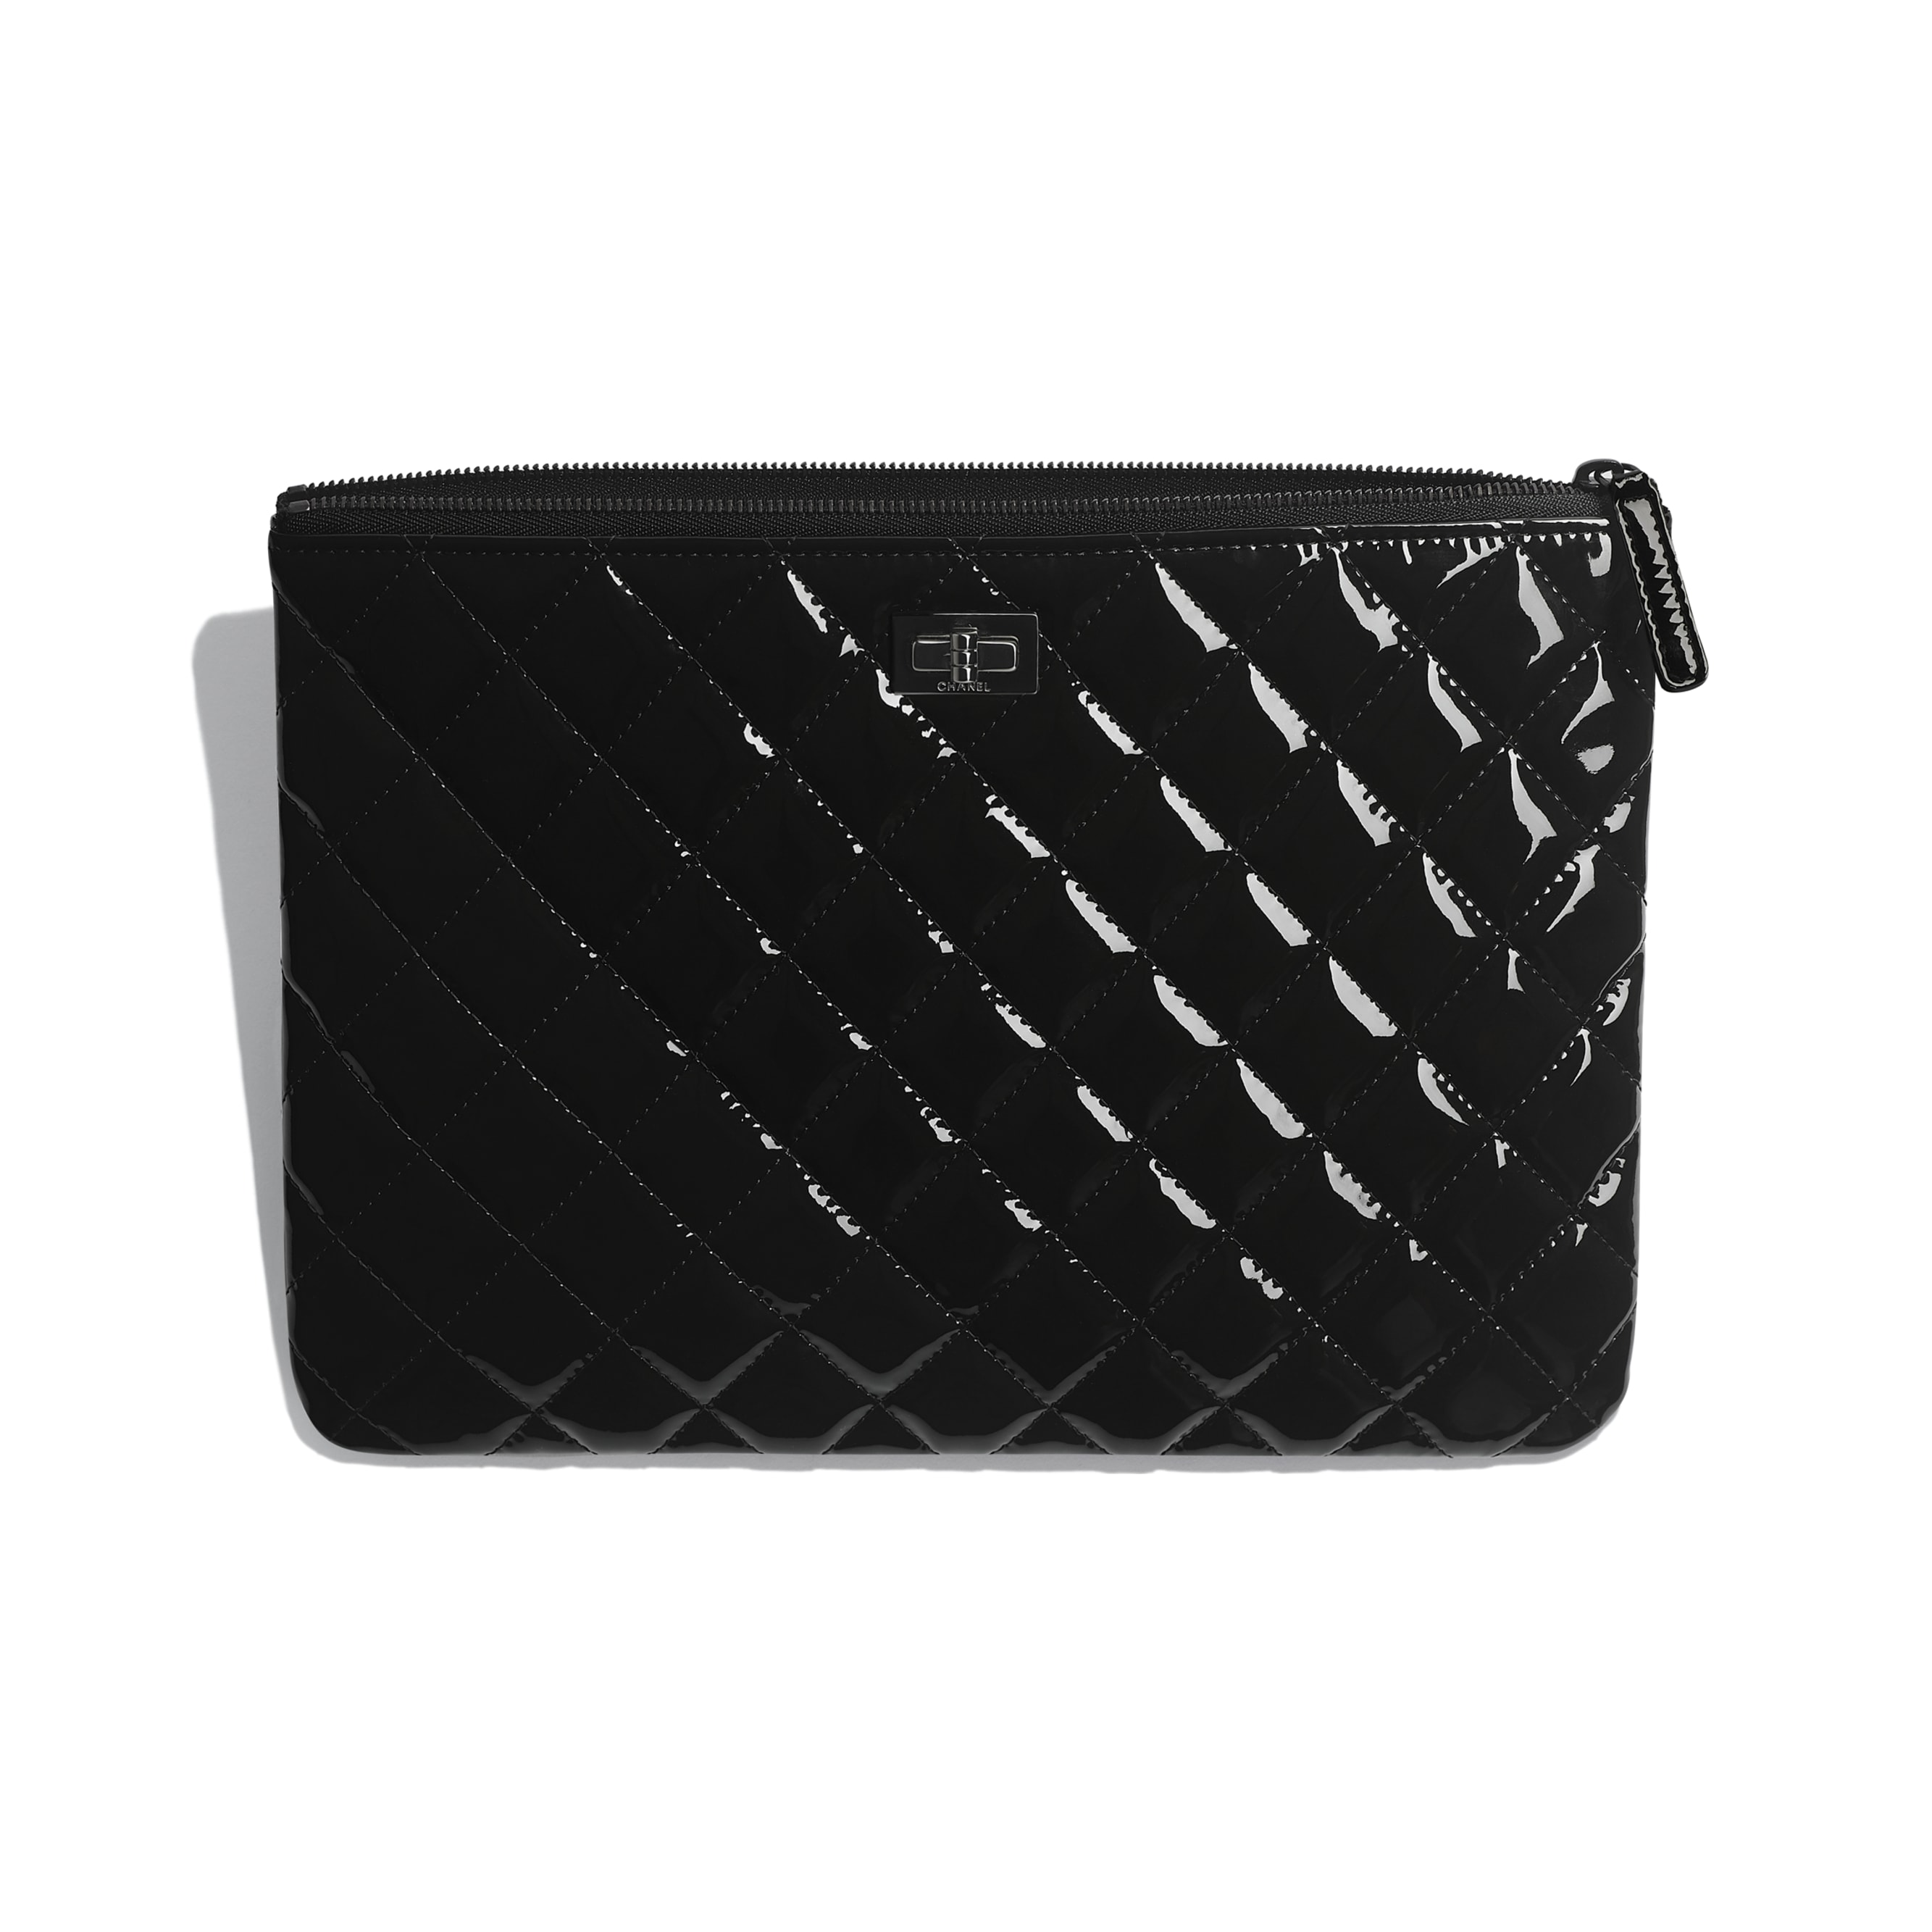 2.55 Pouch - Black - Patent Calfskin & Black Metal - CHANEL - Other view - see standard sized version